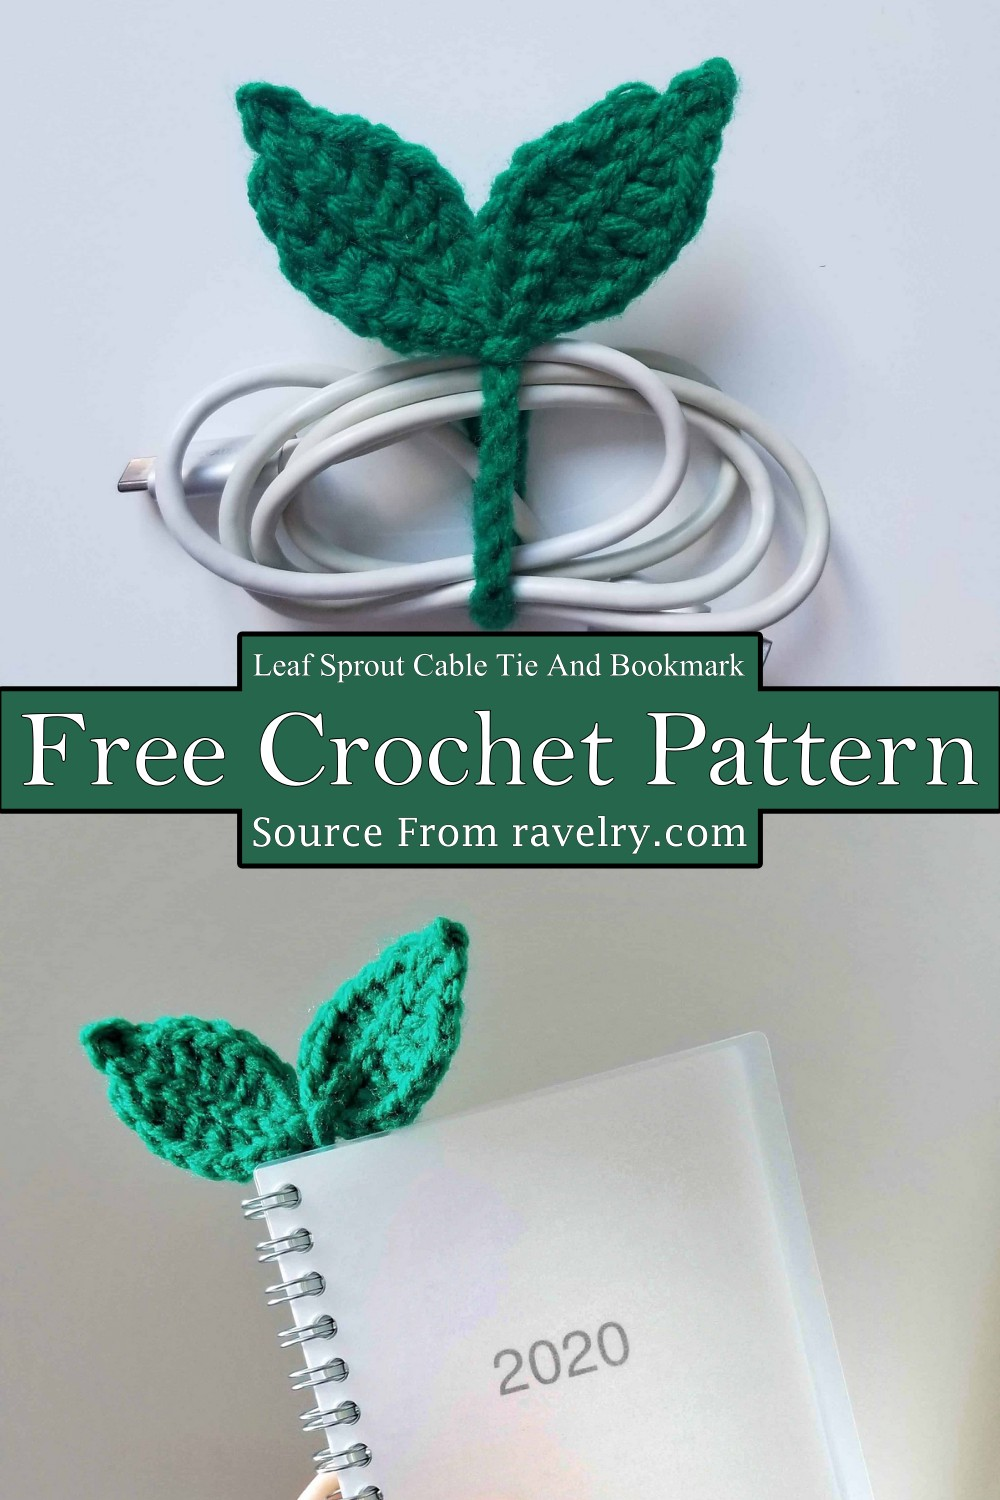 Crochet Leaf Sprout Cable Tie And Bookmark Pattern